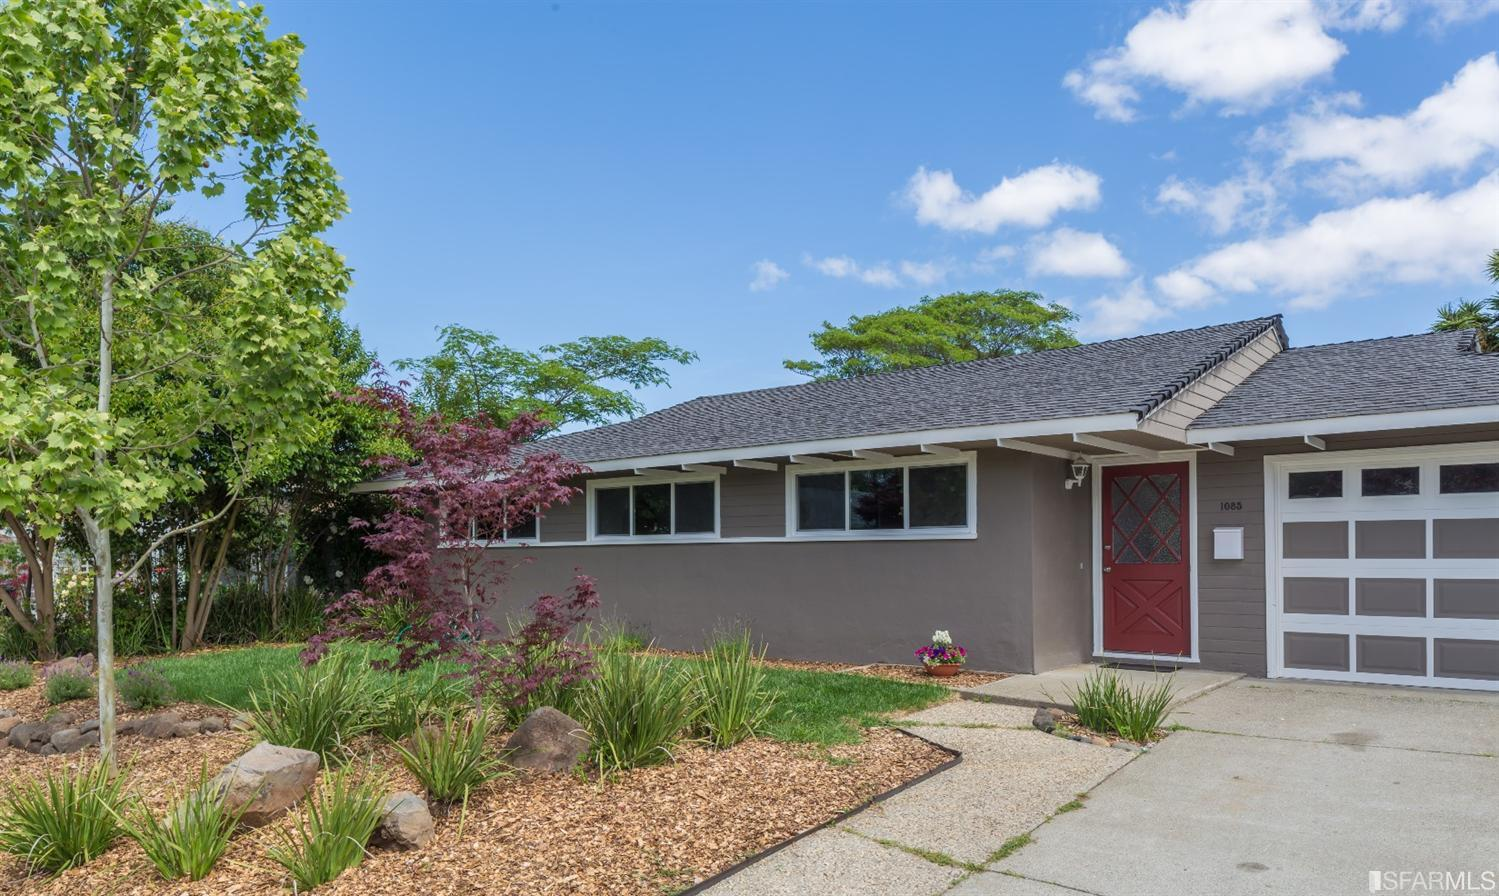 1085 Judson Dr, Mountain View, CA